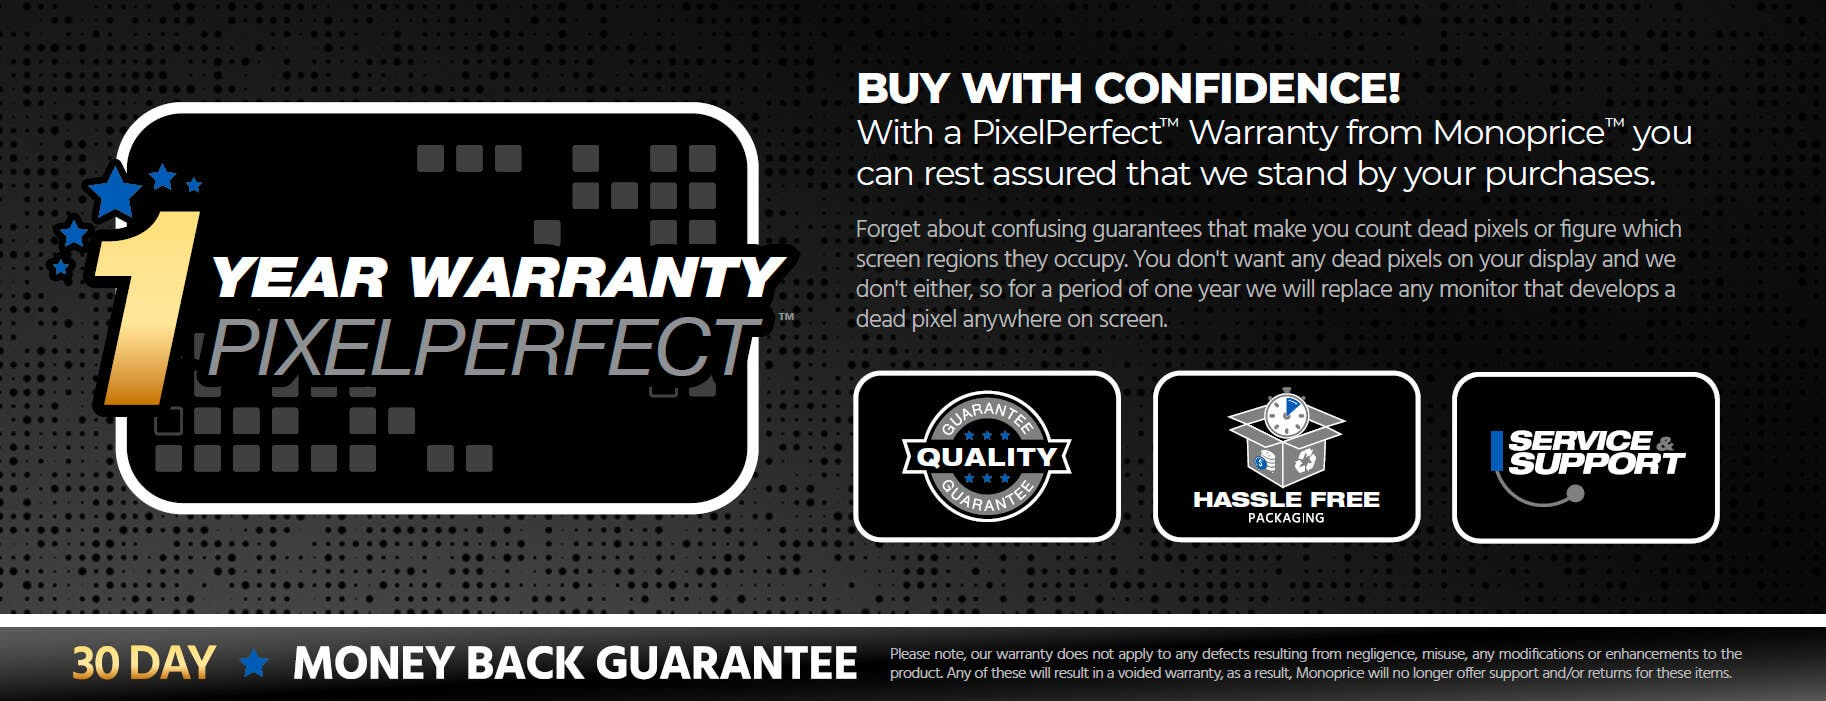 1 Year PixelPerfect Warranty